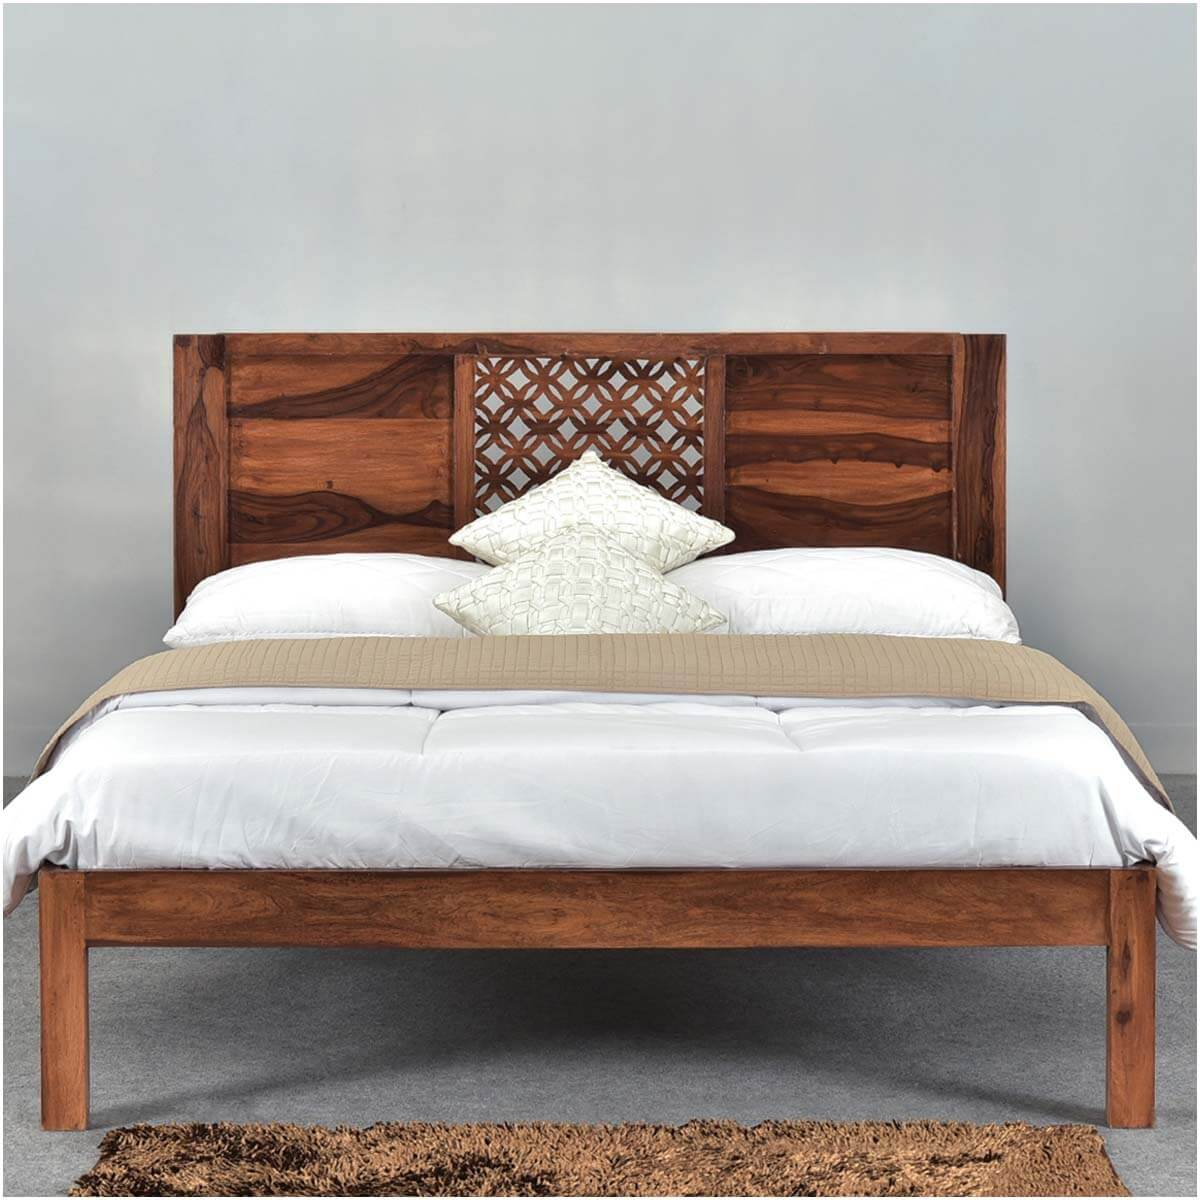 diamond lattice solid wood rustic california king size platform bed. Black Bedroom Furniture Sets. Home Design Ideas